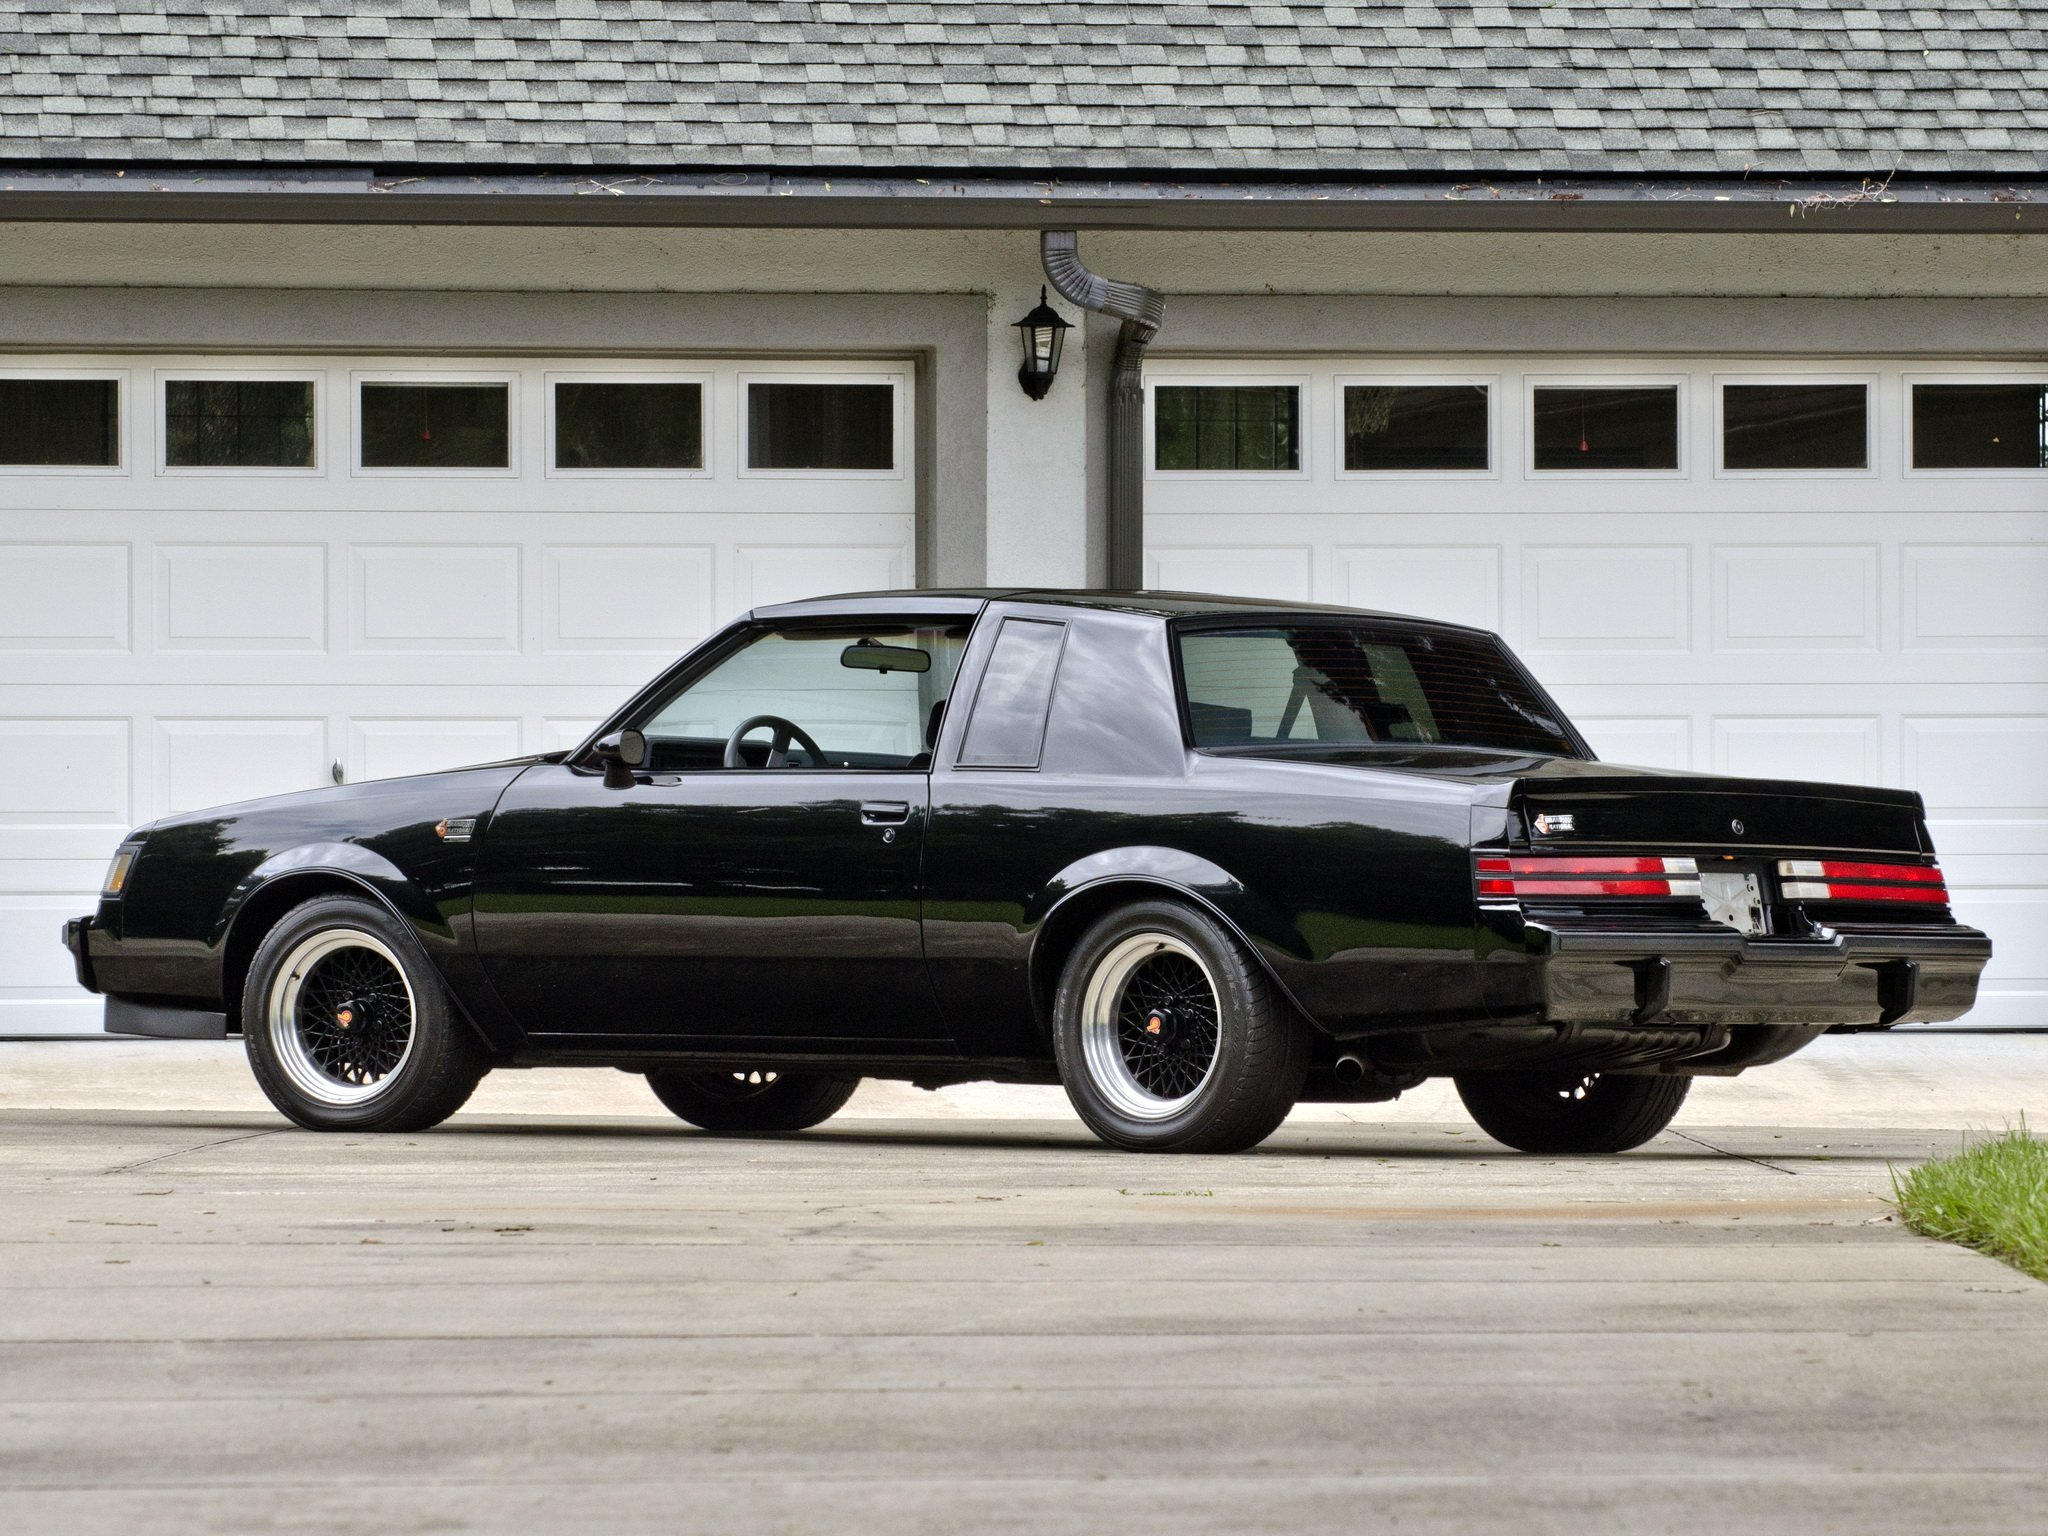 1984 87 buick regal grand national muscle wallpaper 2048x1536 435157 wallpaperup. Black Bedroom Furniture Sets. Home Design Ideas